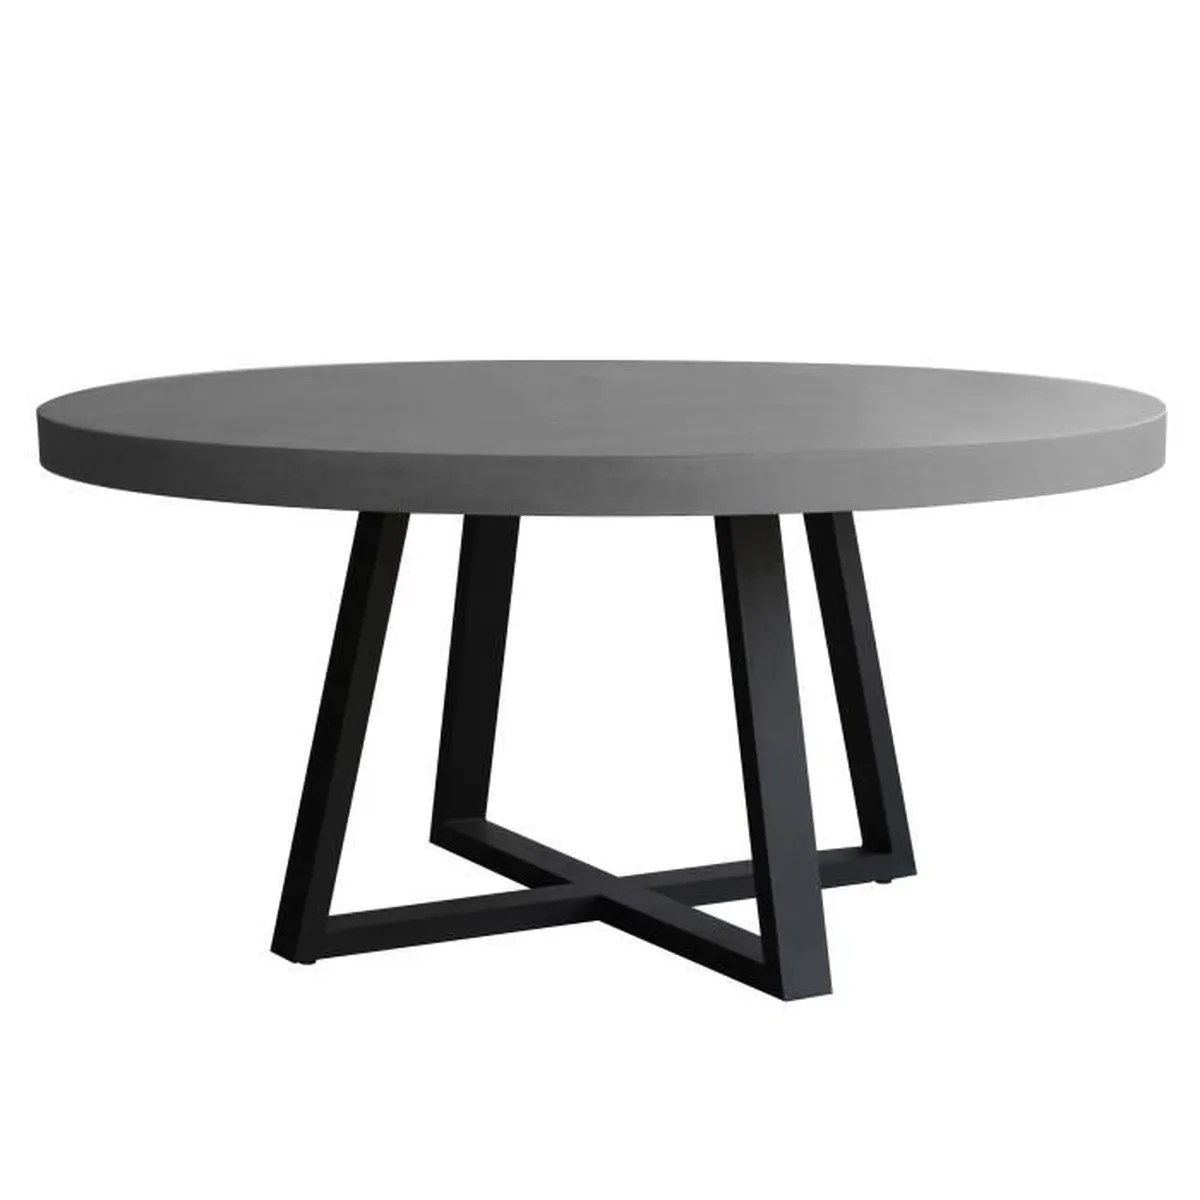 Table Ronde 140 Cm Table Ronde Mahuru 140 Cm Achat Vente Table A Manger